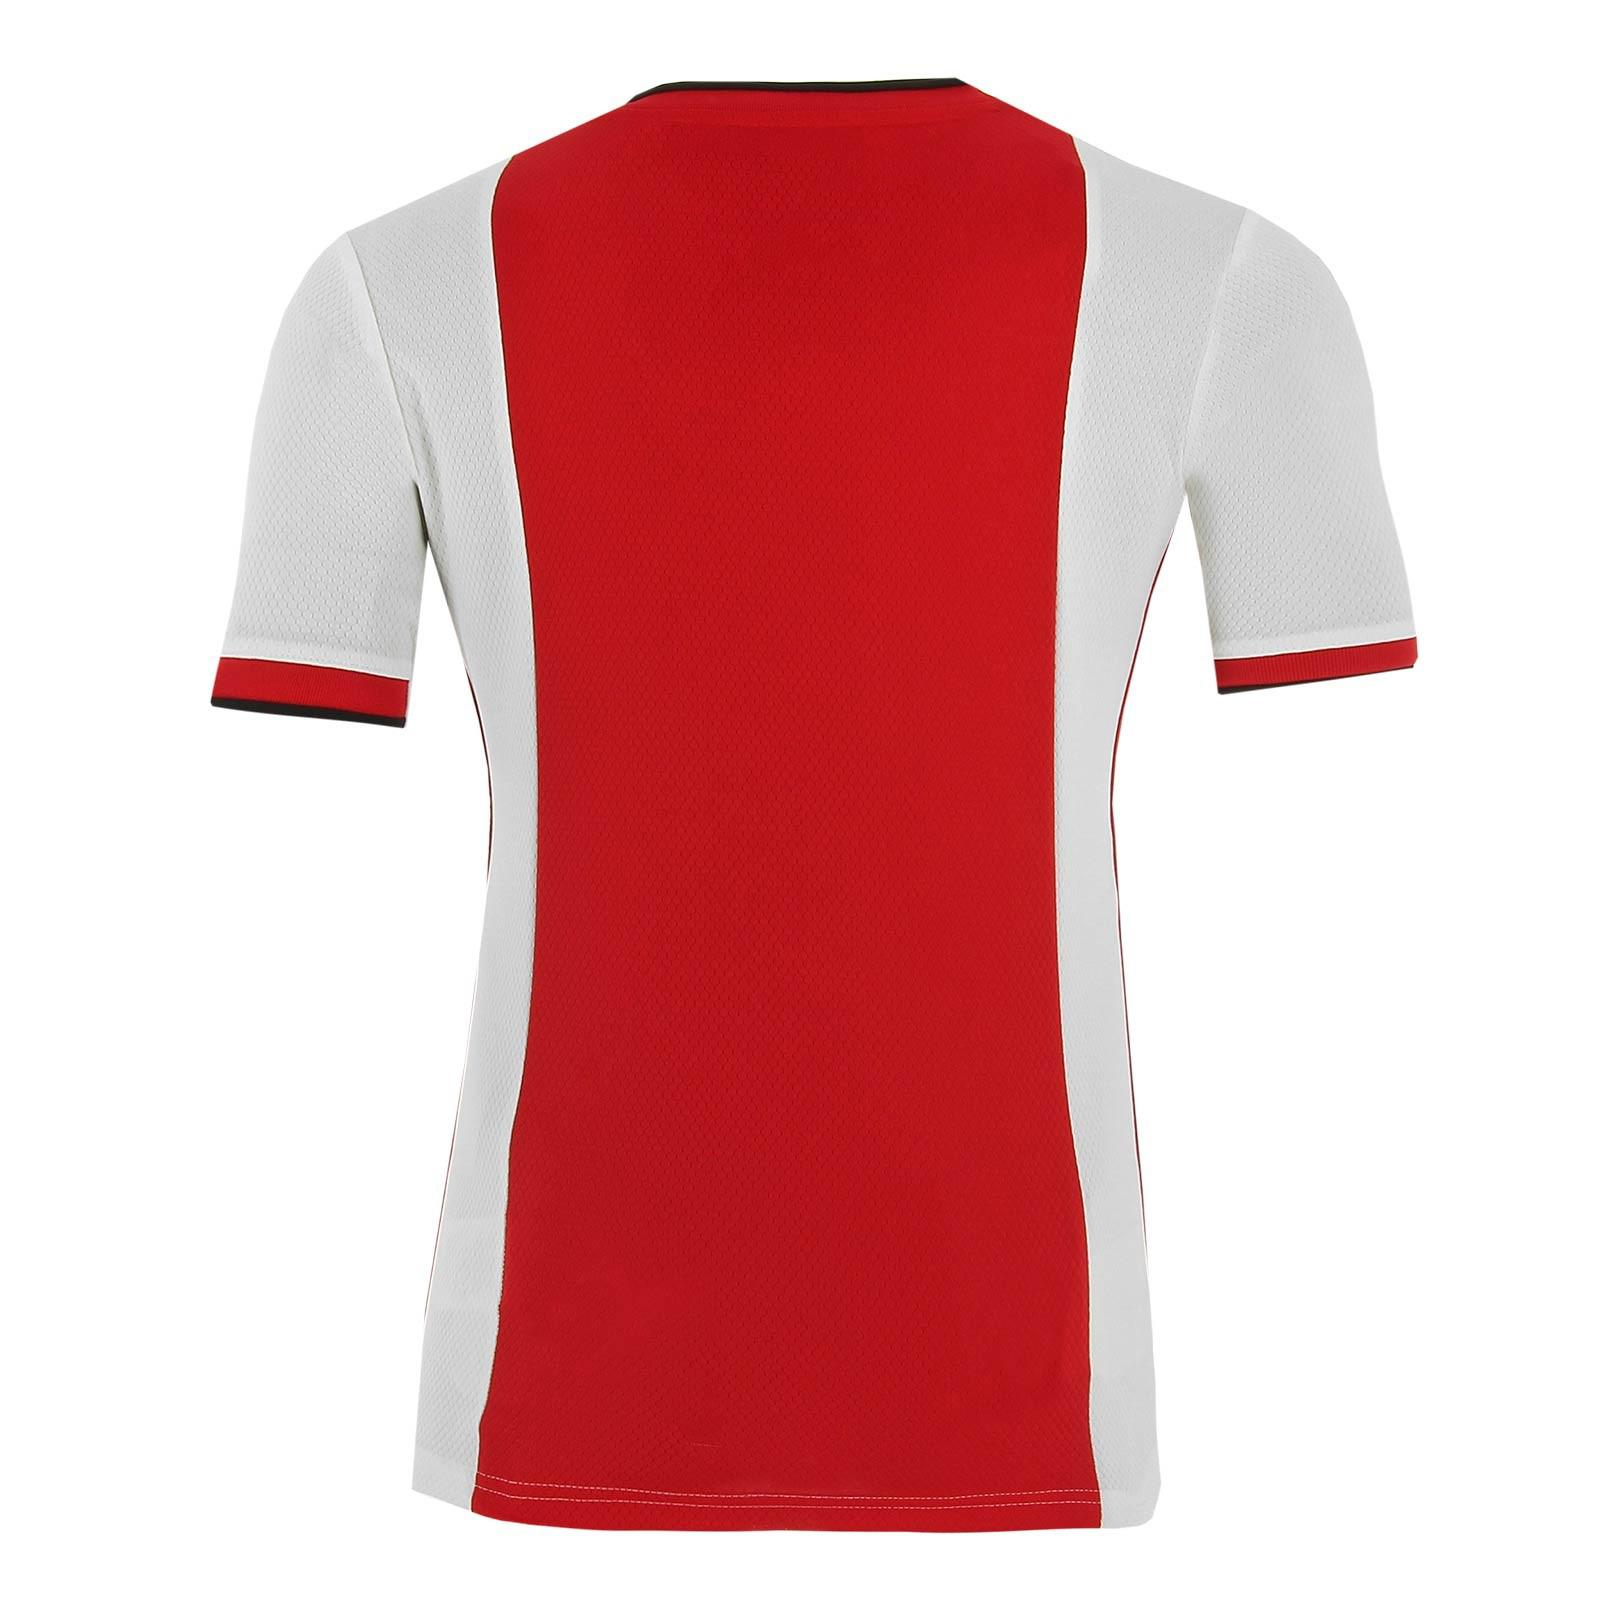 CAMISETA ADIDAS AJAX 2019/2020 JR.